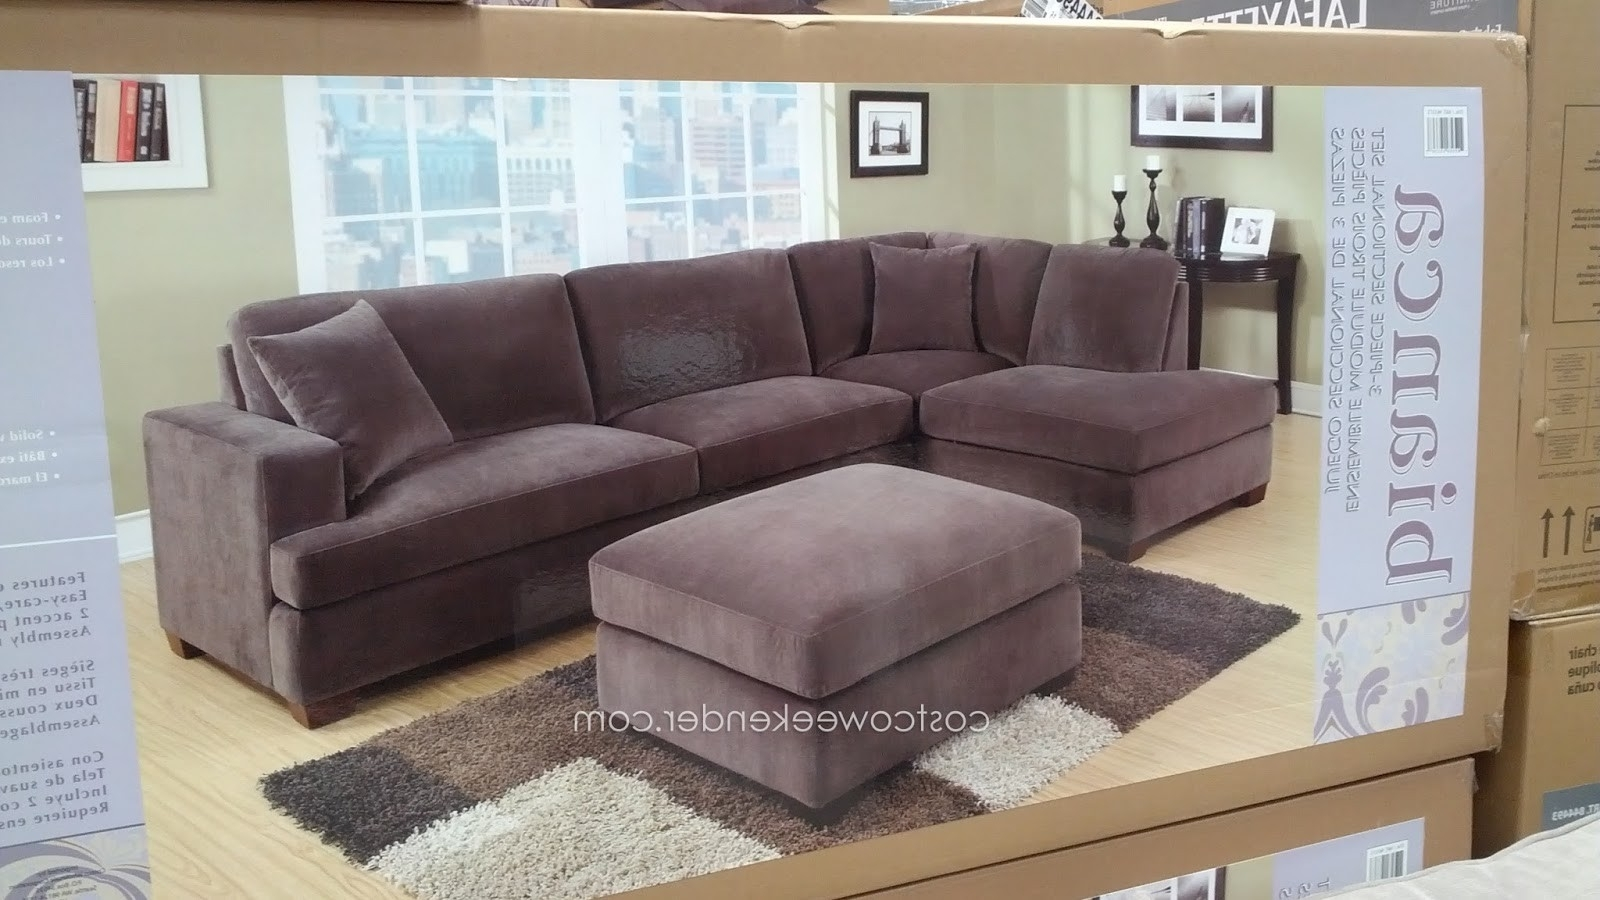 2017 Elegant Emerald Sectional Sofa – Mediasupload With Regard To Home Furniture Sectional Sofas (View 10 of 15)